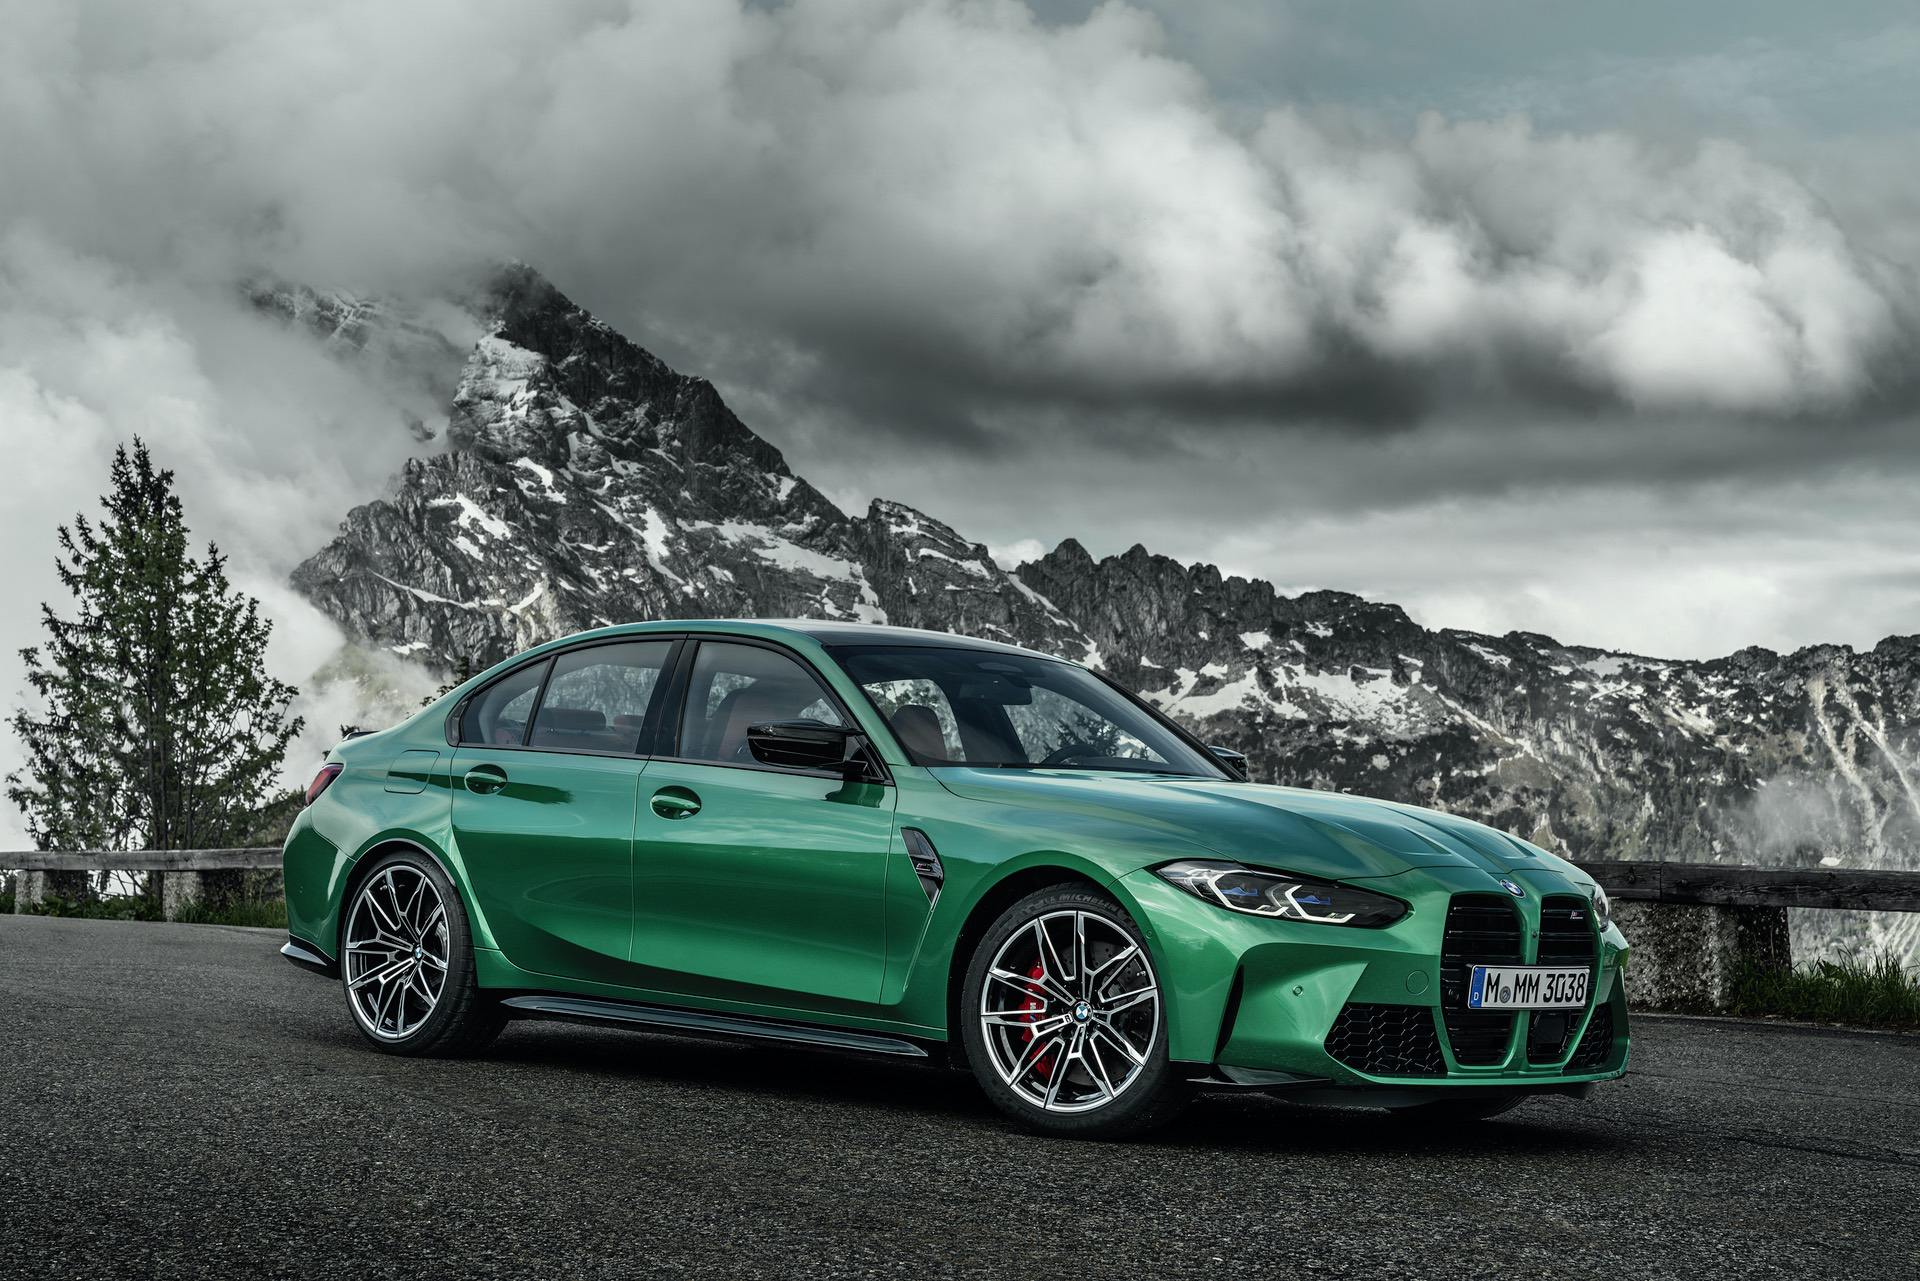 2021-bmw-m3-competition-exterior-01.jpg